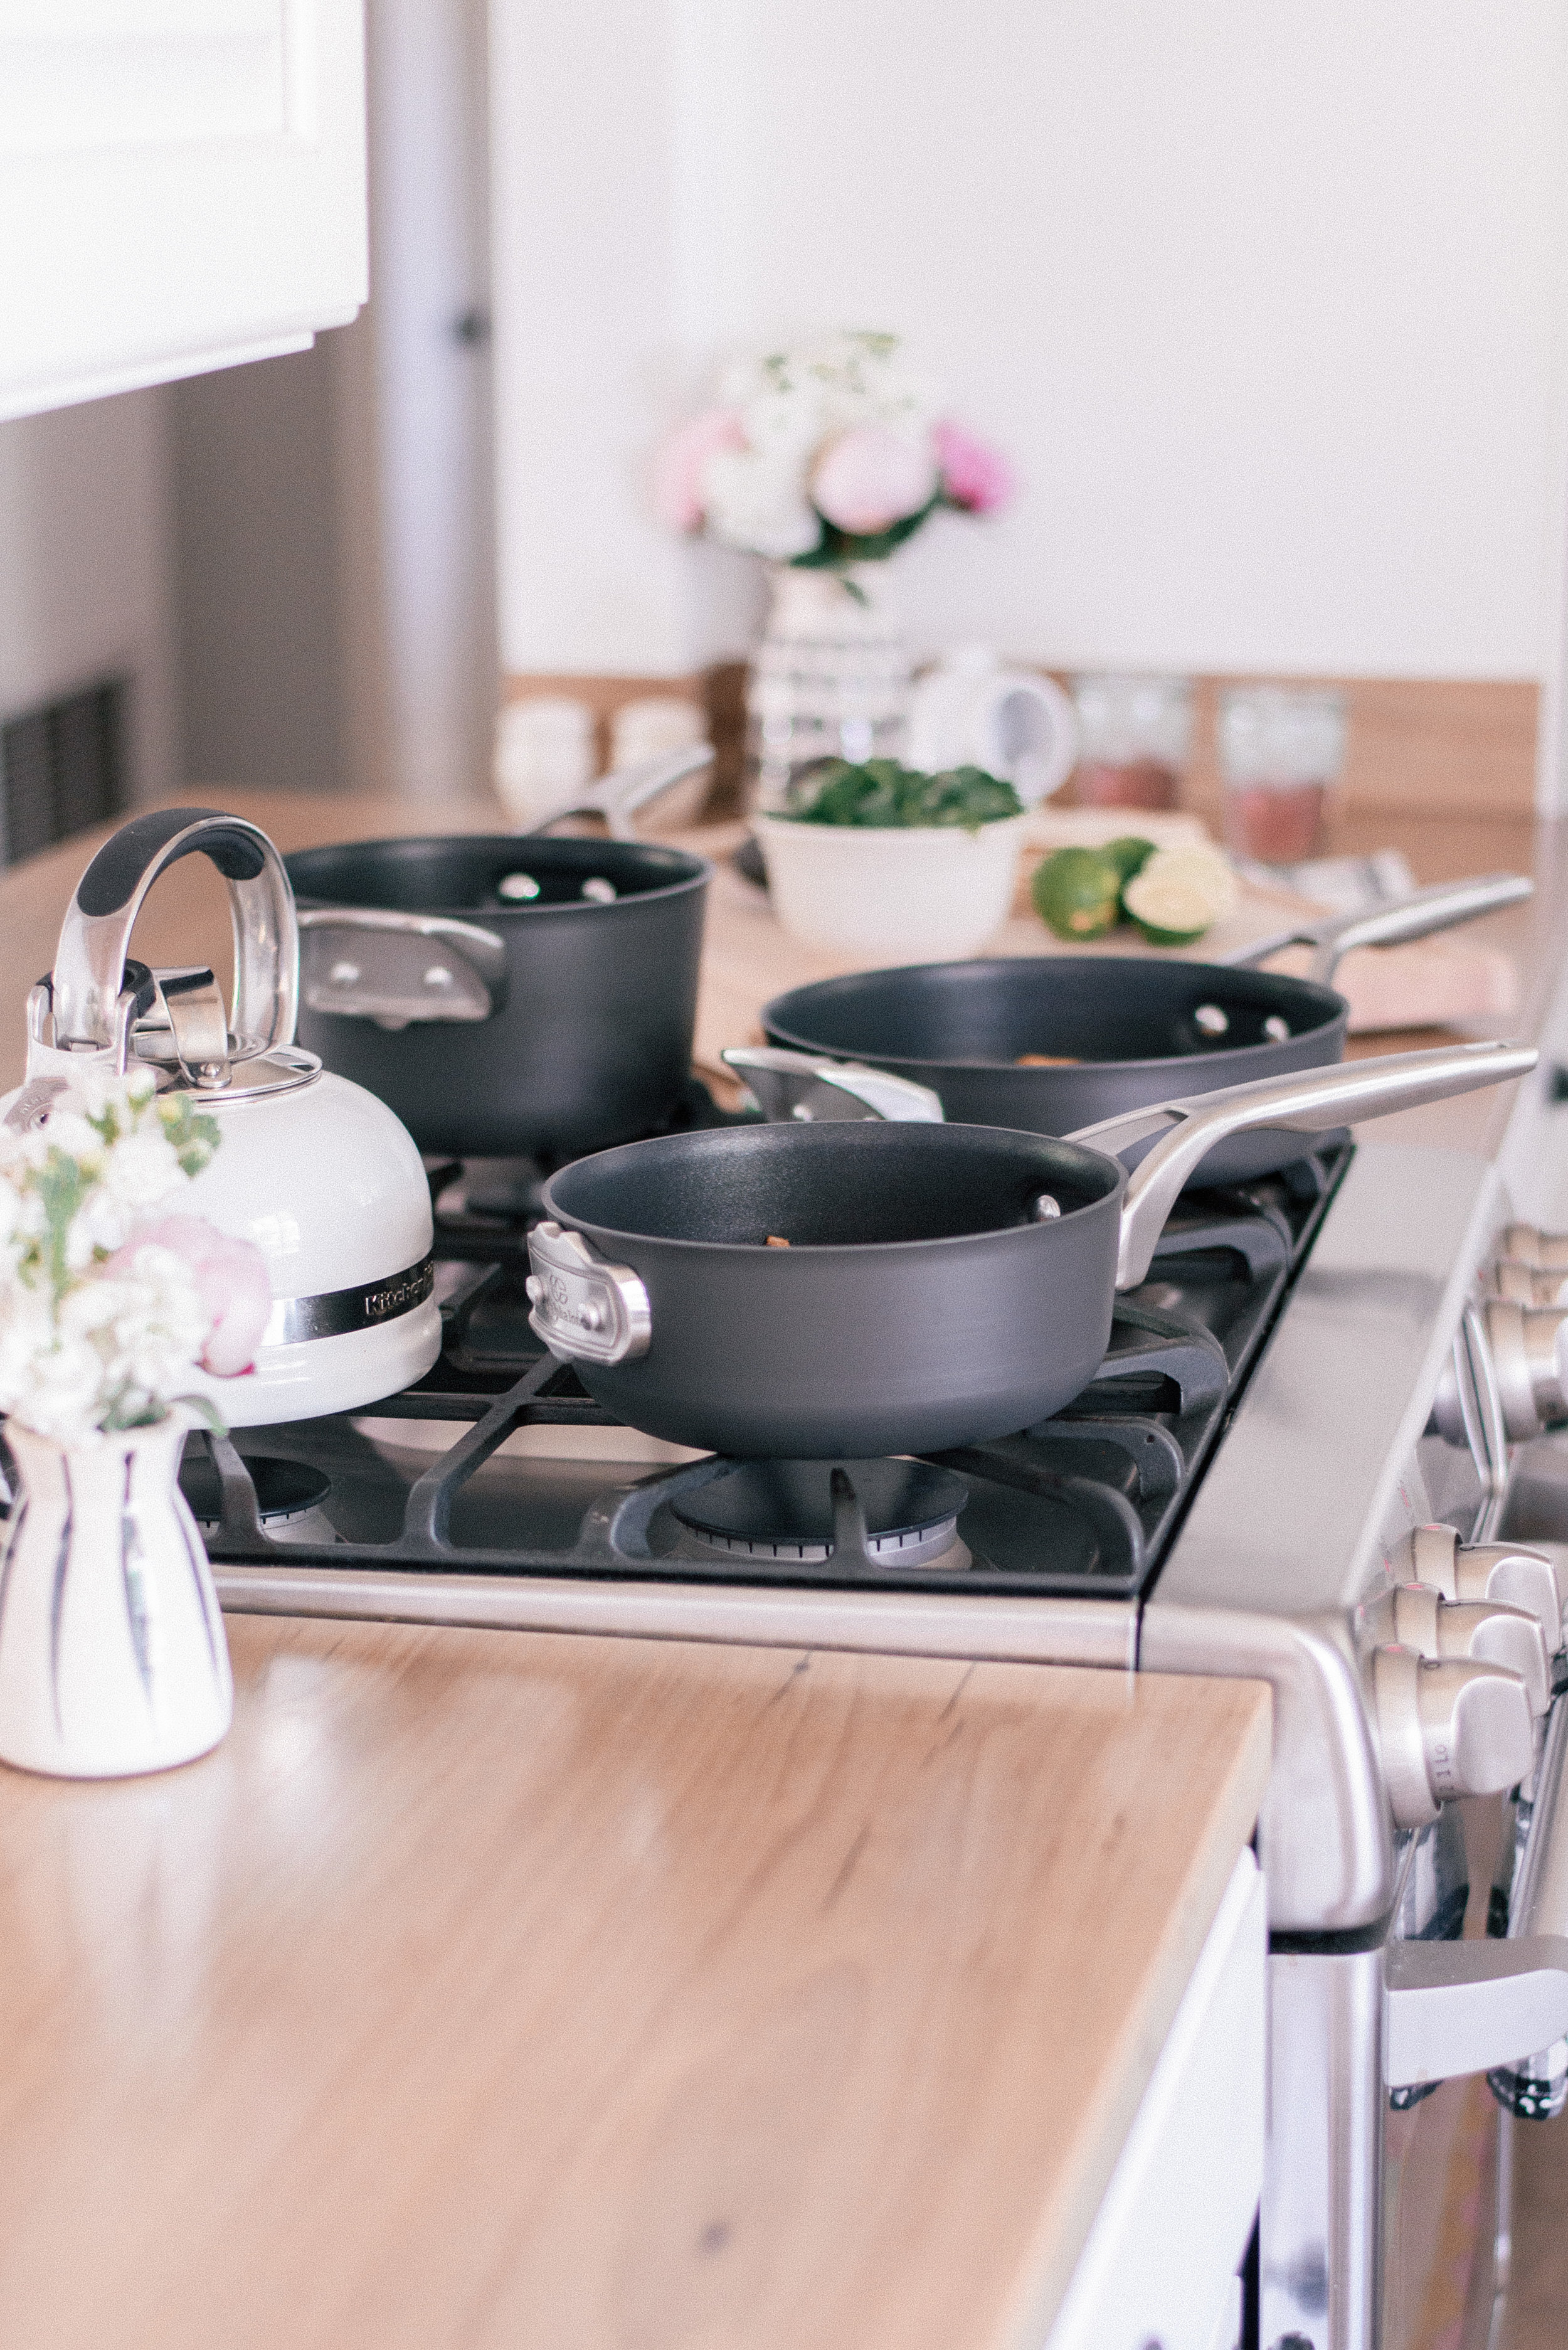 The Best Nonstick Cookware Sets with Calphalon and Bed Bath & Beyond featured by top U.S. Lifestyle blog Love + Specs: image of Calphalon pans on cottage kitchen stove